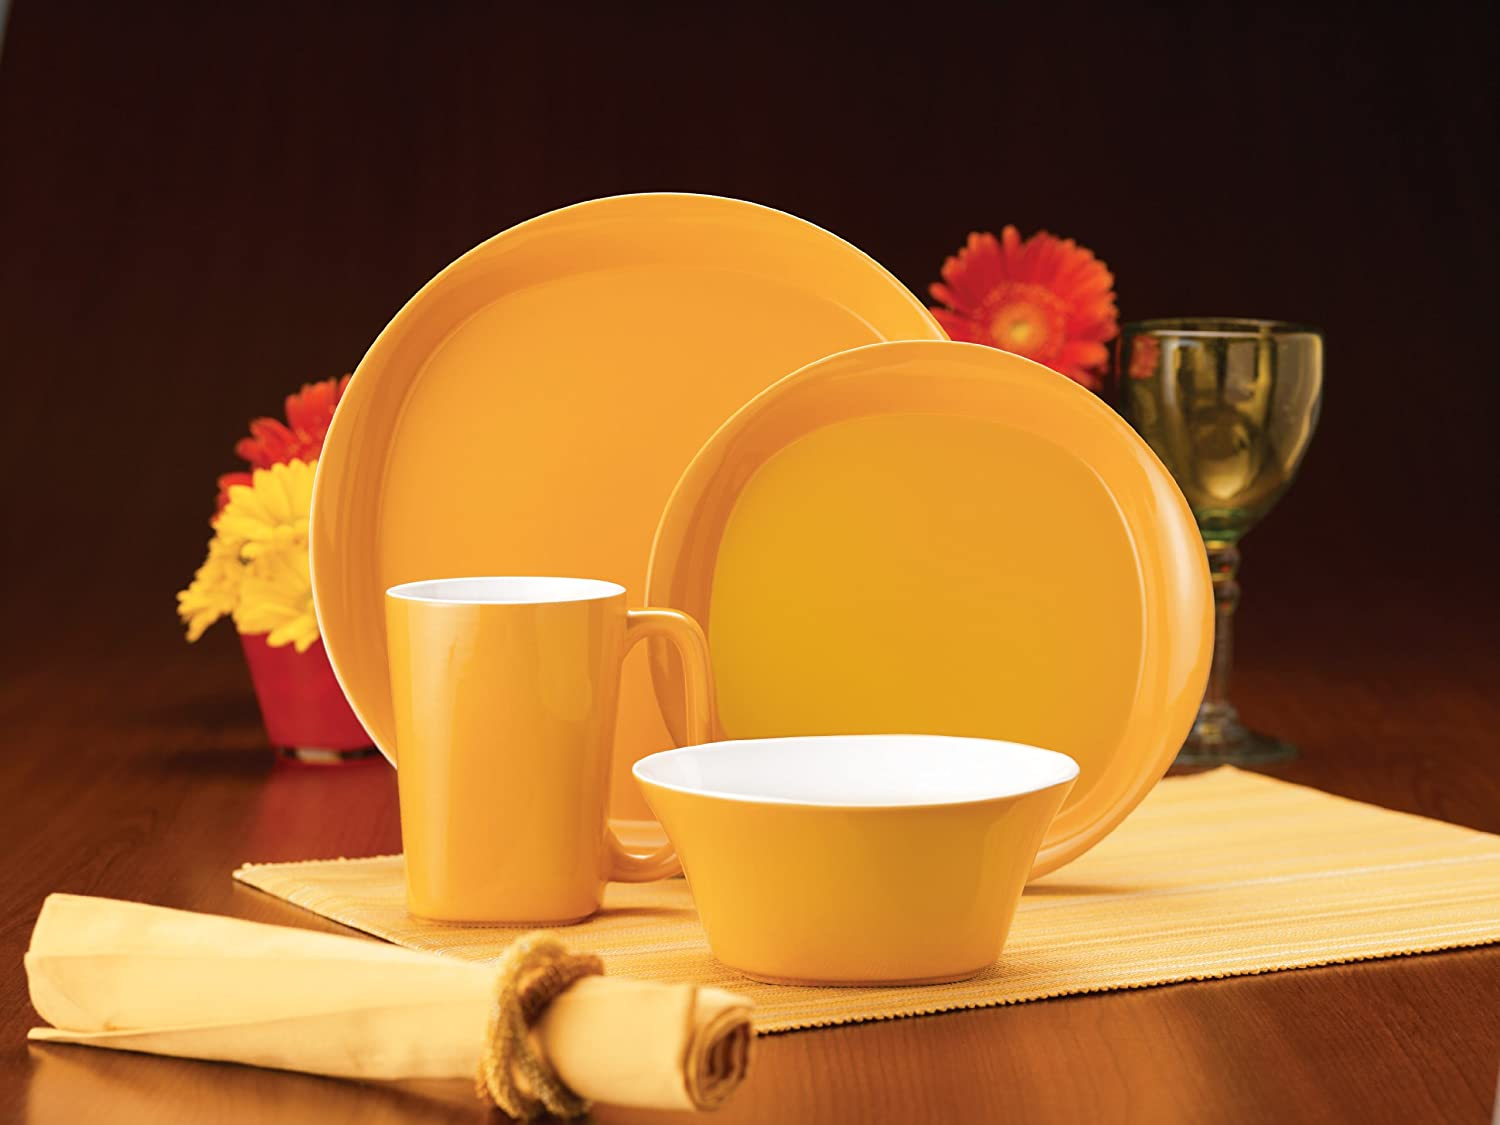 Amazon.com | Rachael Ray Dinnerware Round and Square 16-Piece Dinnerware Set Yellow Yellow Plate Set Dinnerware Sets & Amazon.com | Rachael Ray Dinnerware Round and Square 16-Piece ...